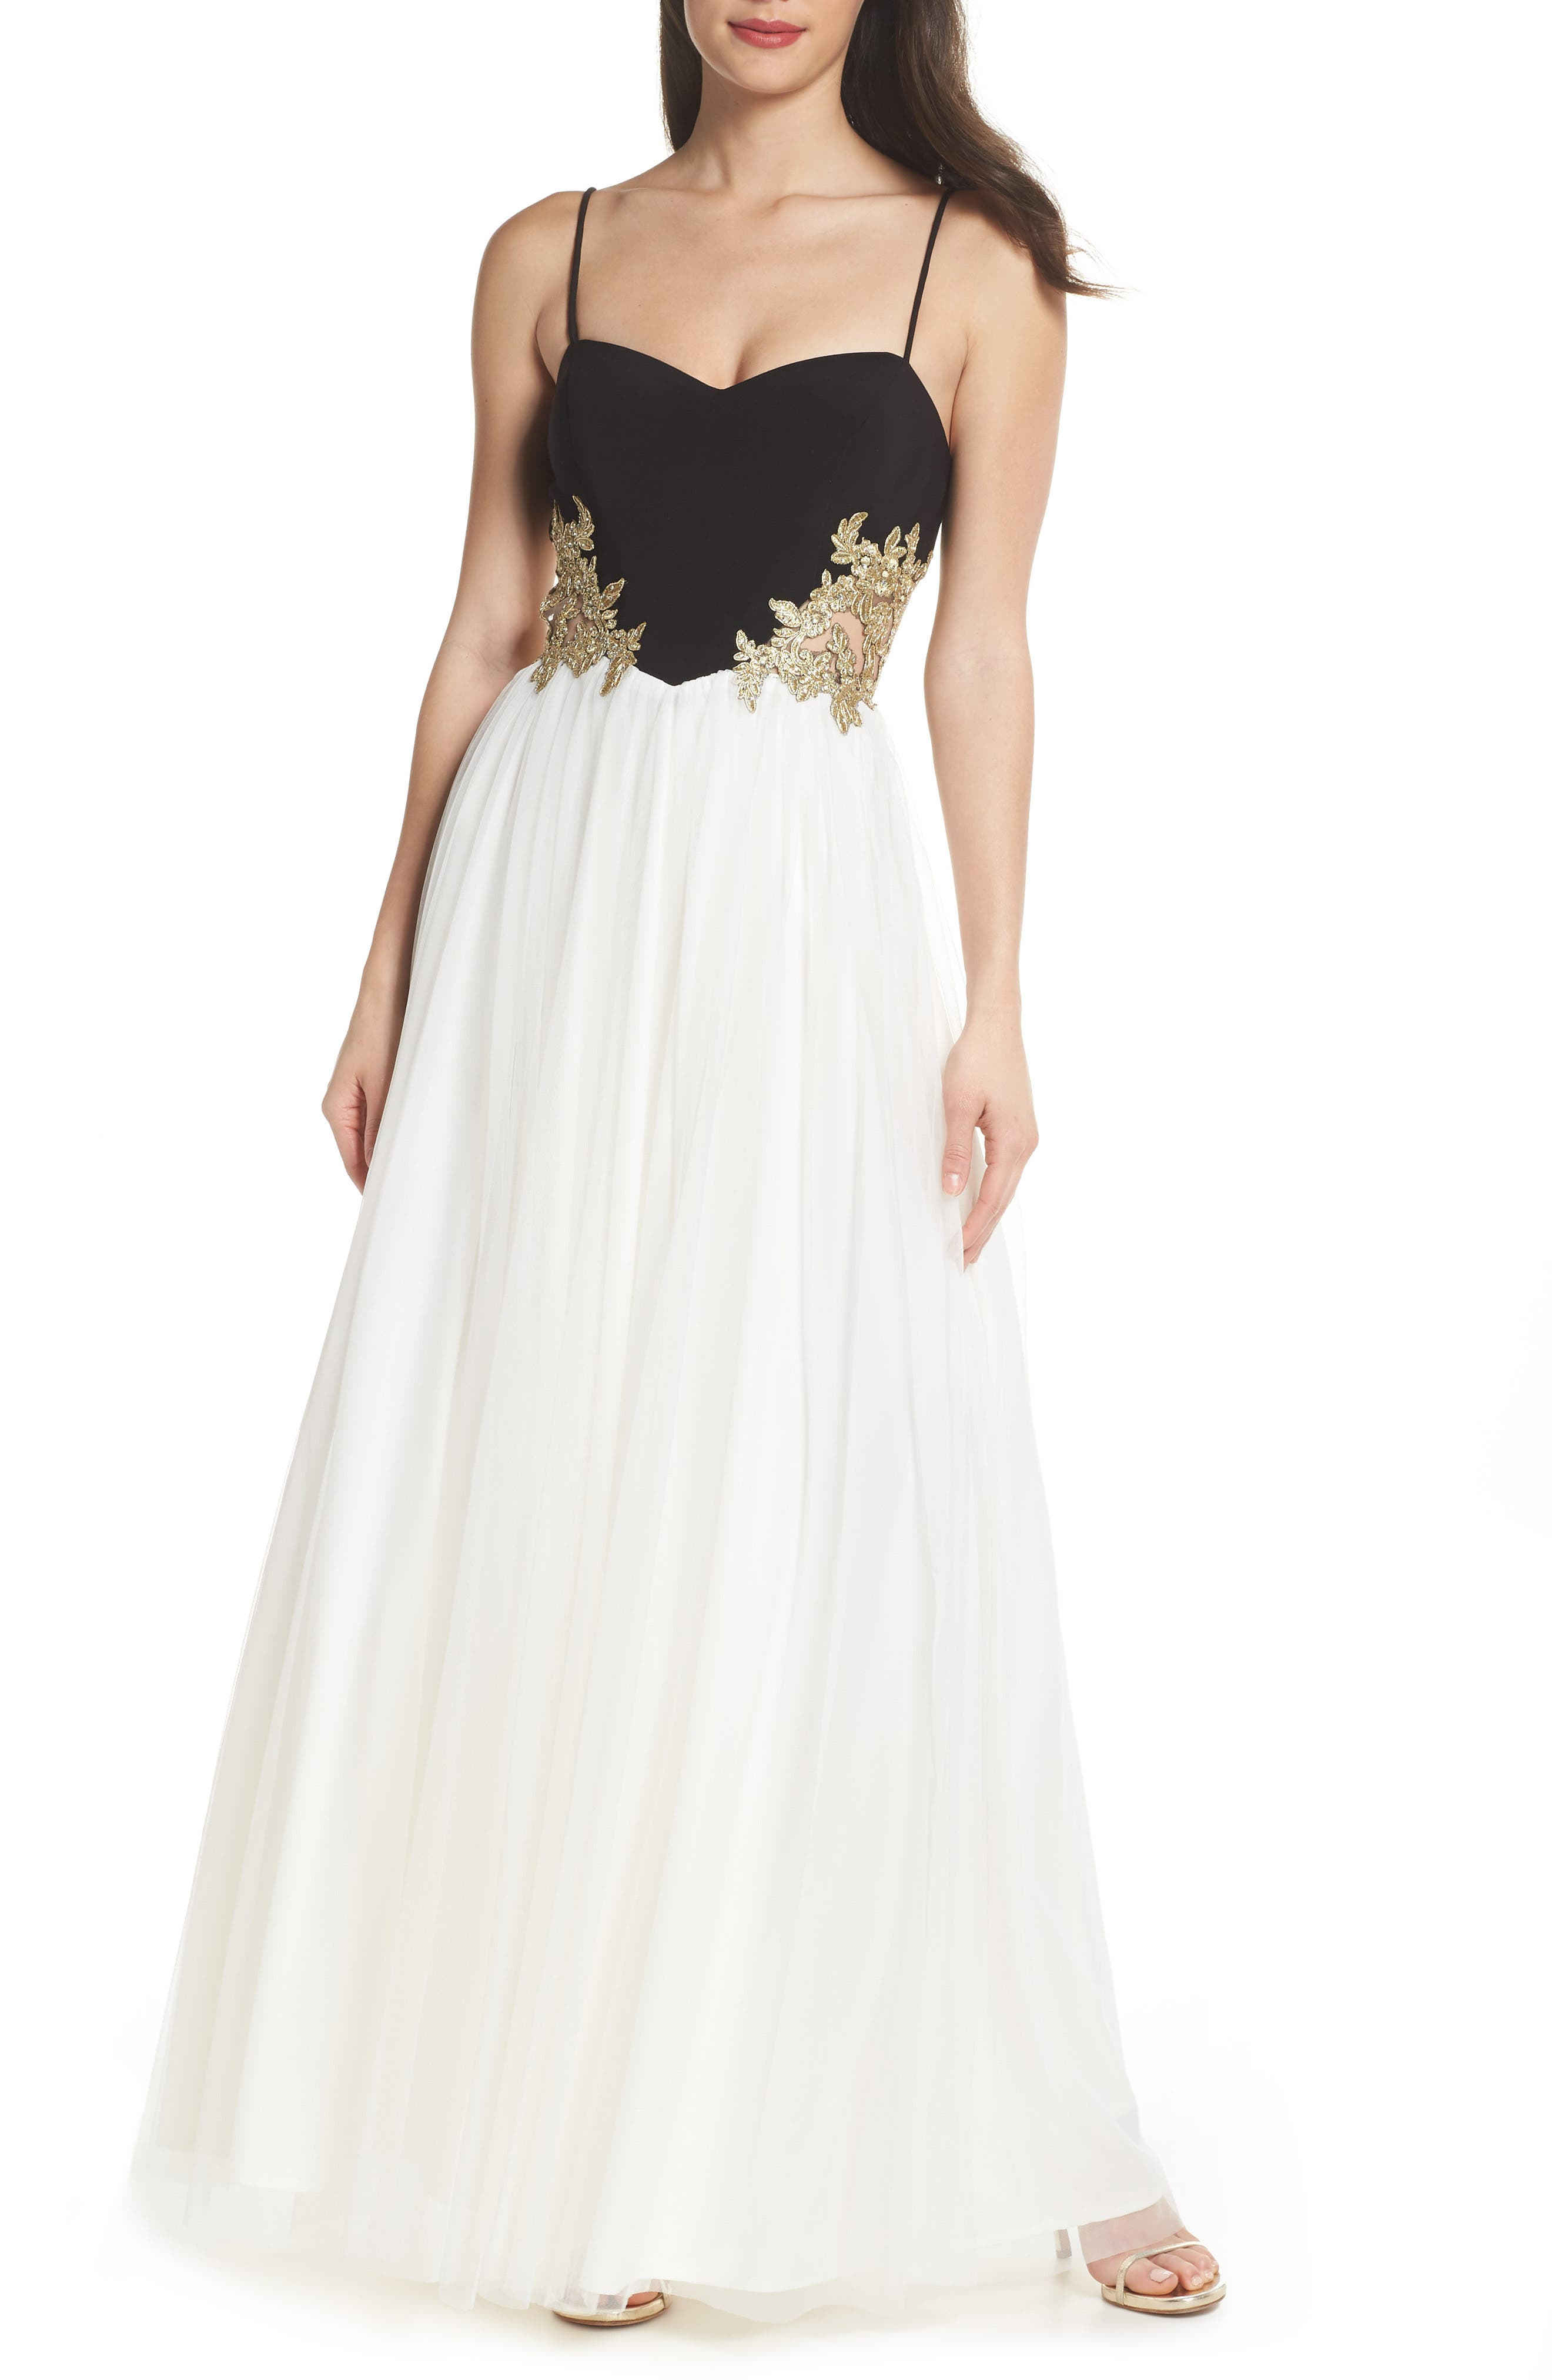 Blondie Nights Embellished Tulle Gown,                             Main thumbnail 1, color,                             Black/ Ivory/ Gold